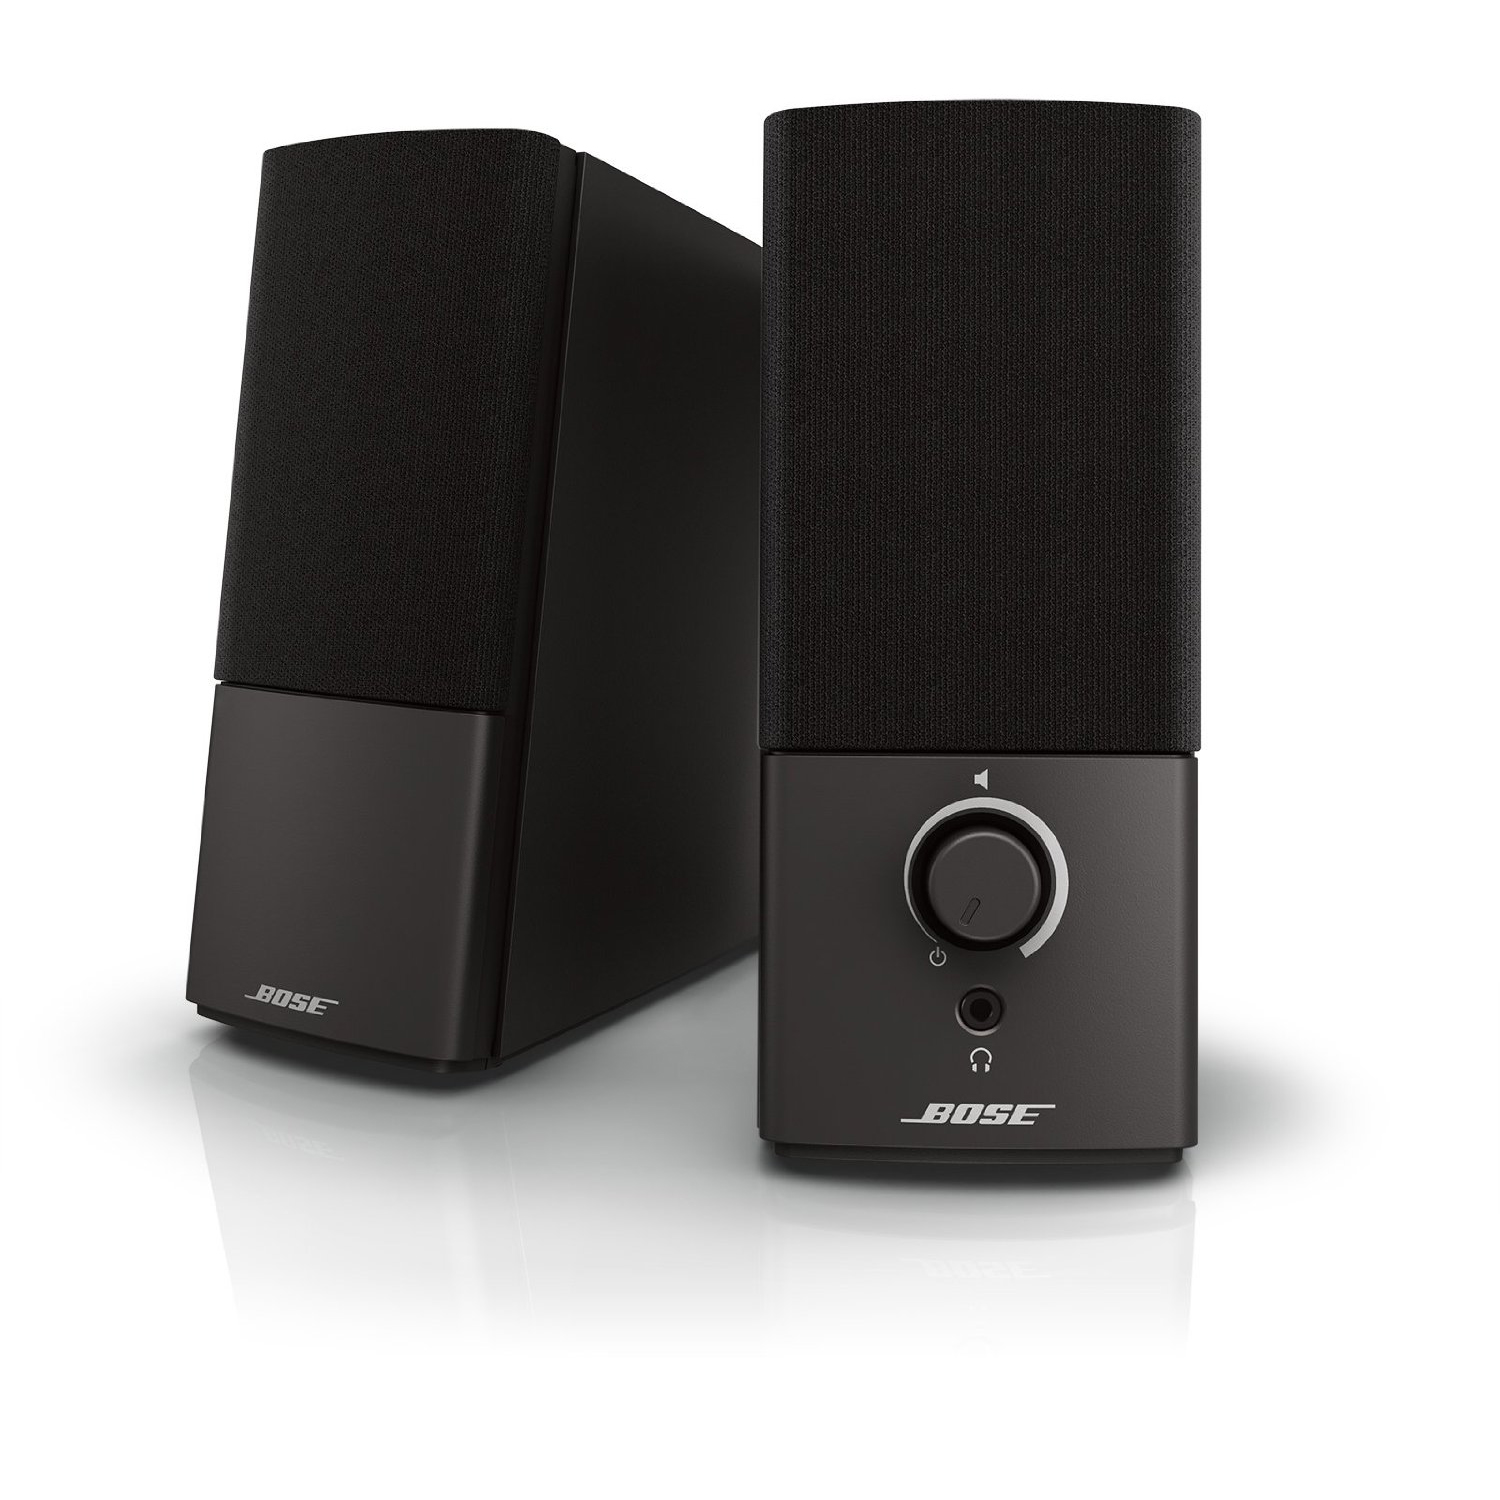 bose companion 2 series iii vs logitech z623 space vs sound. Black Bedroom Furniture Sets. Home Design Ideas